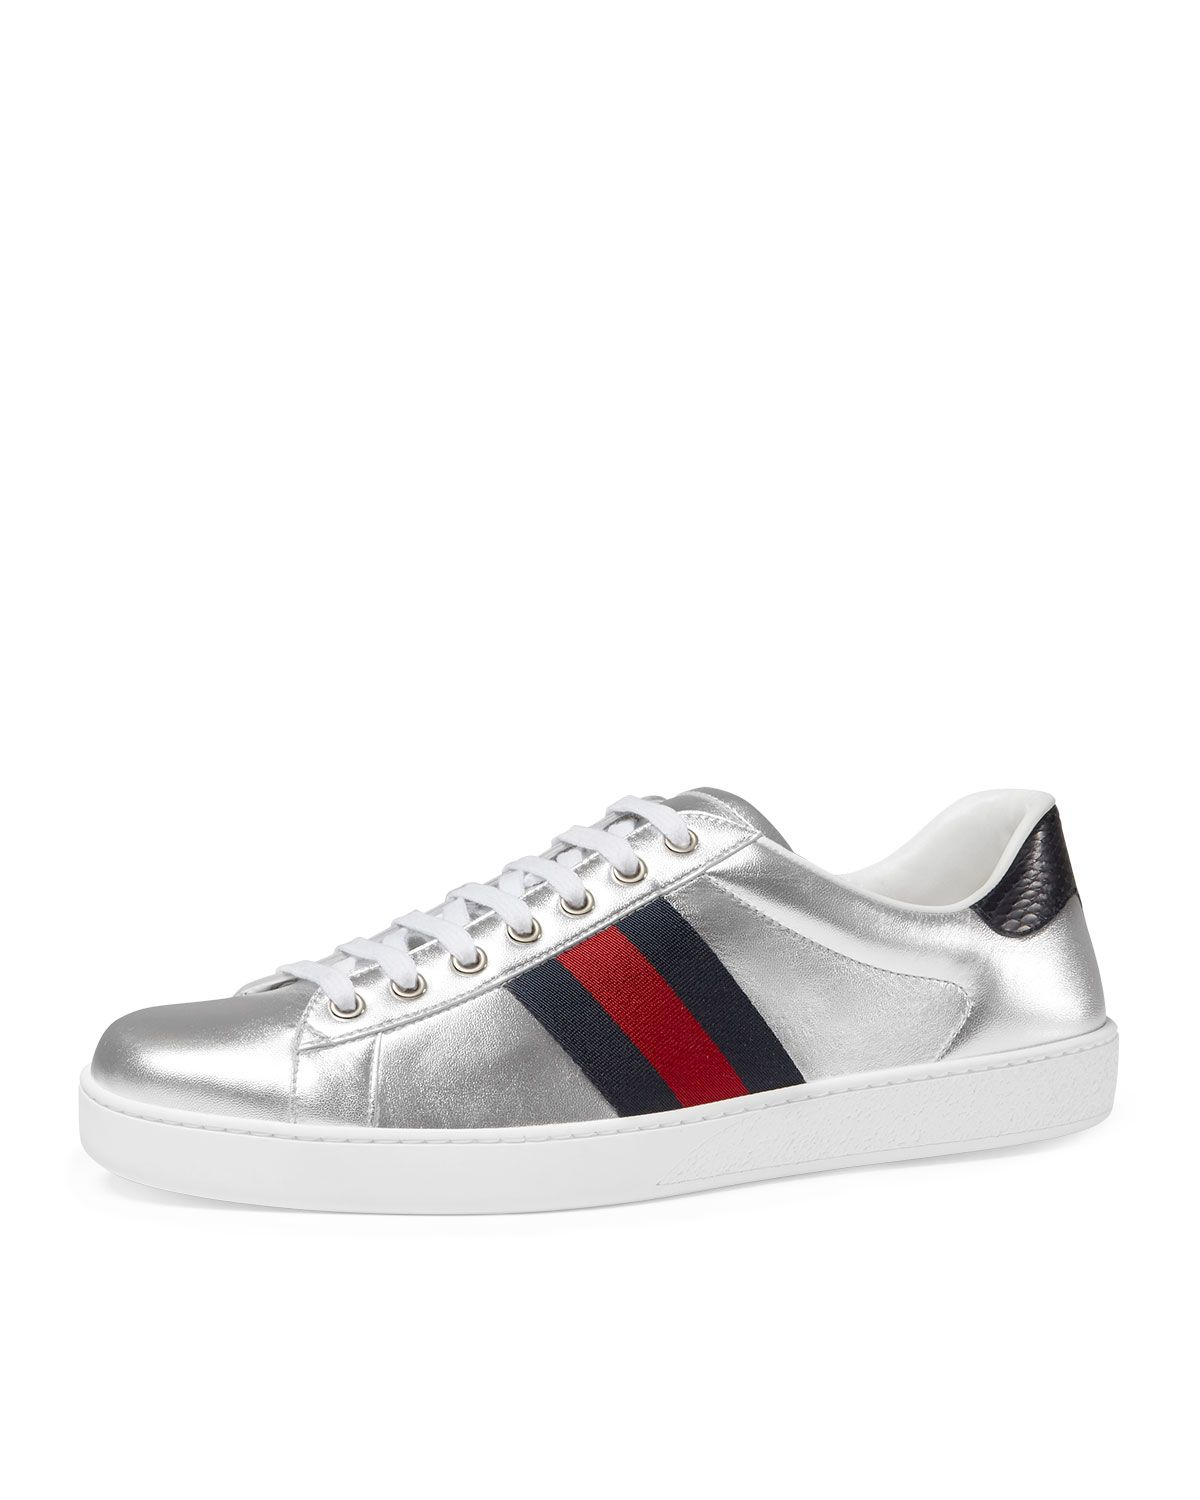 990e26fb1b79 Gucci New Ace Metallic Leather Low-Top Sneaker